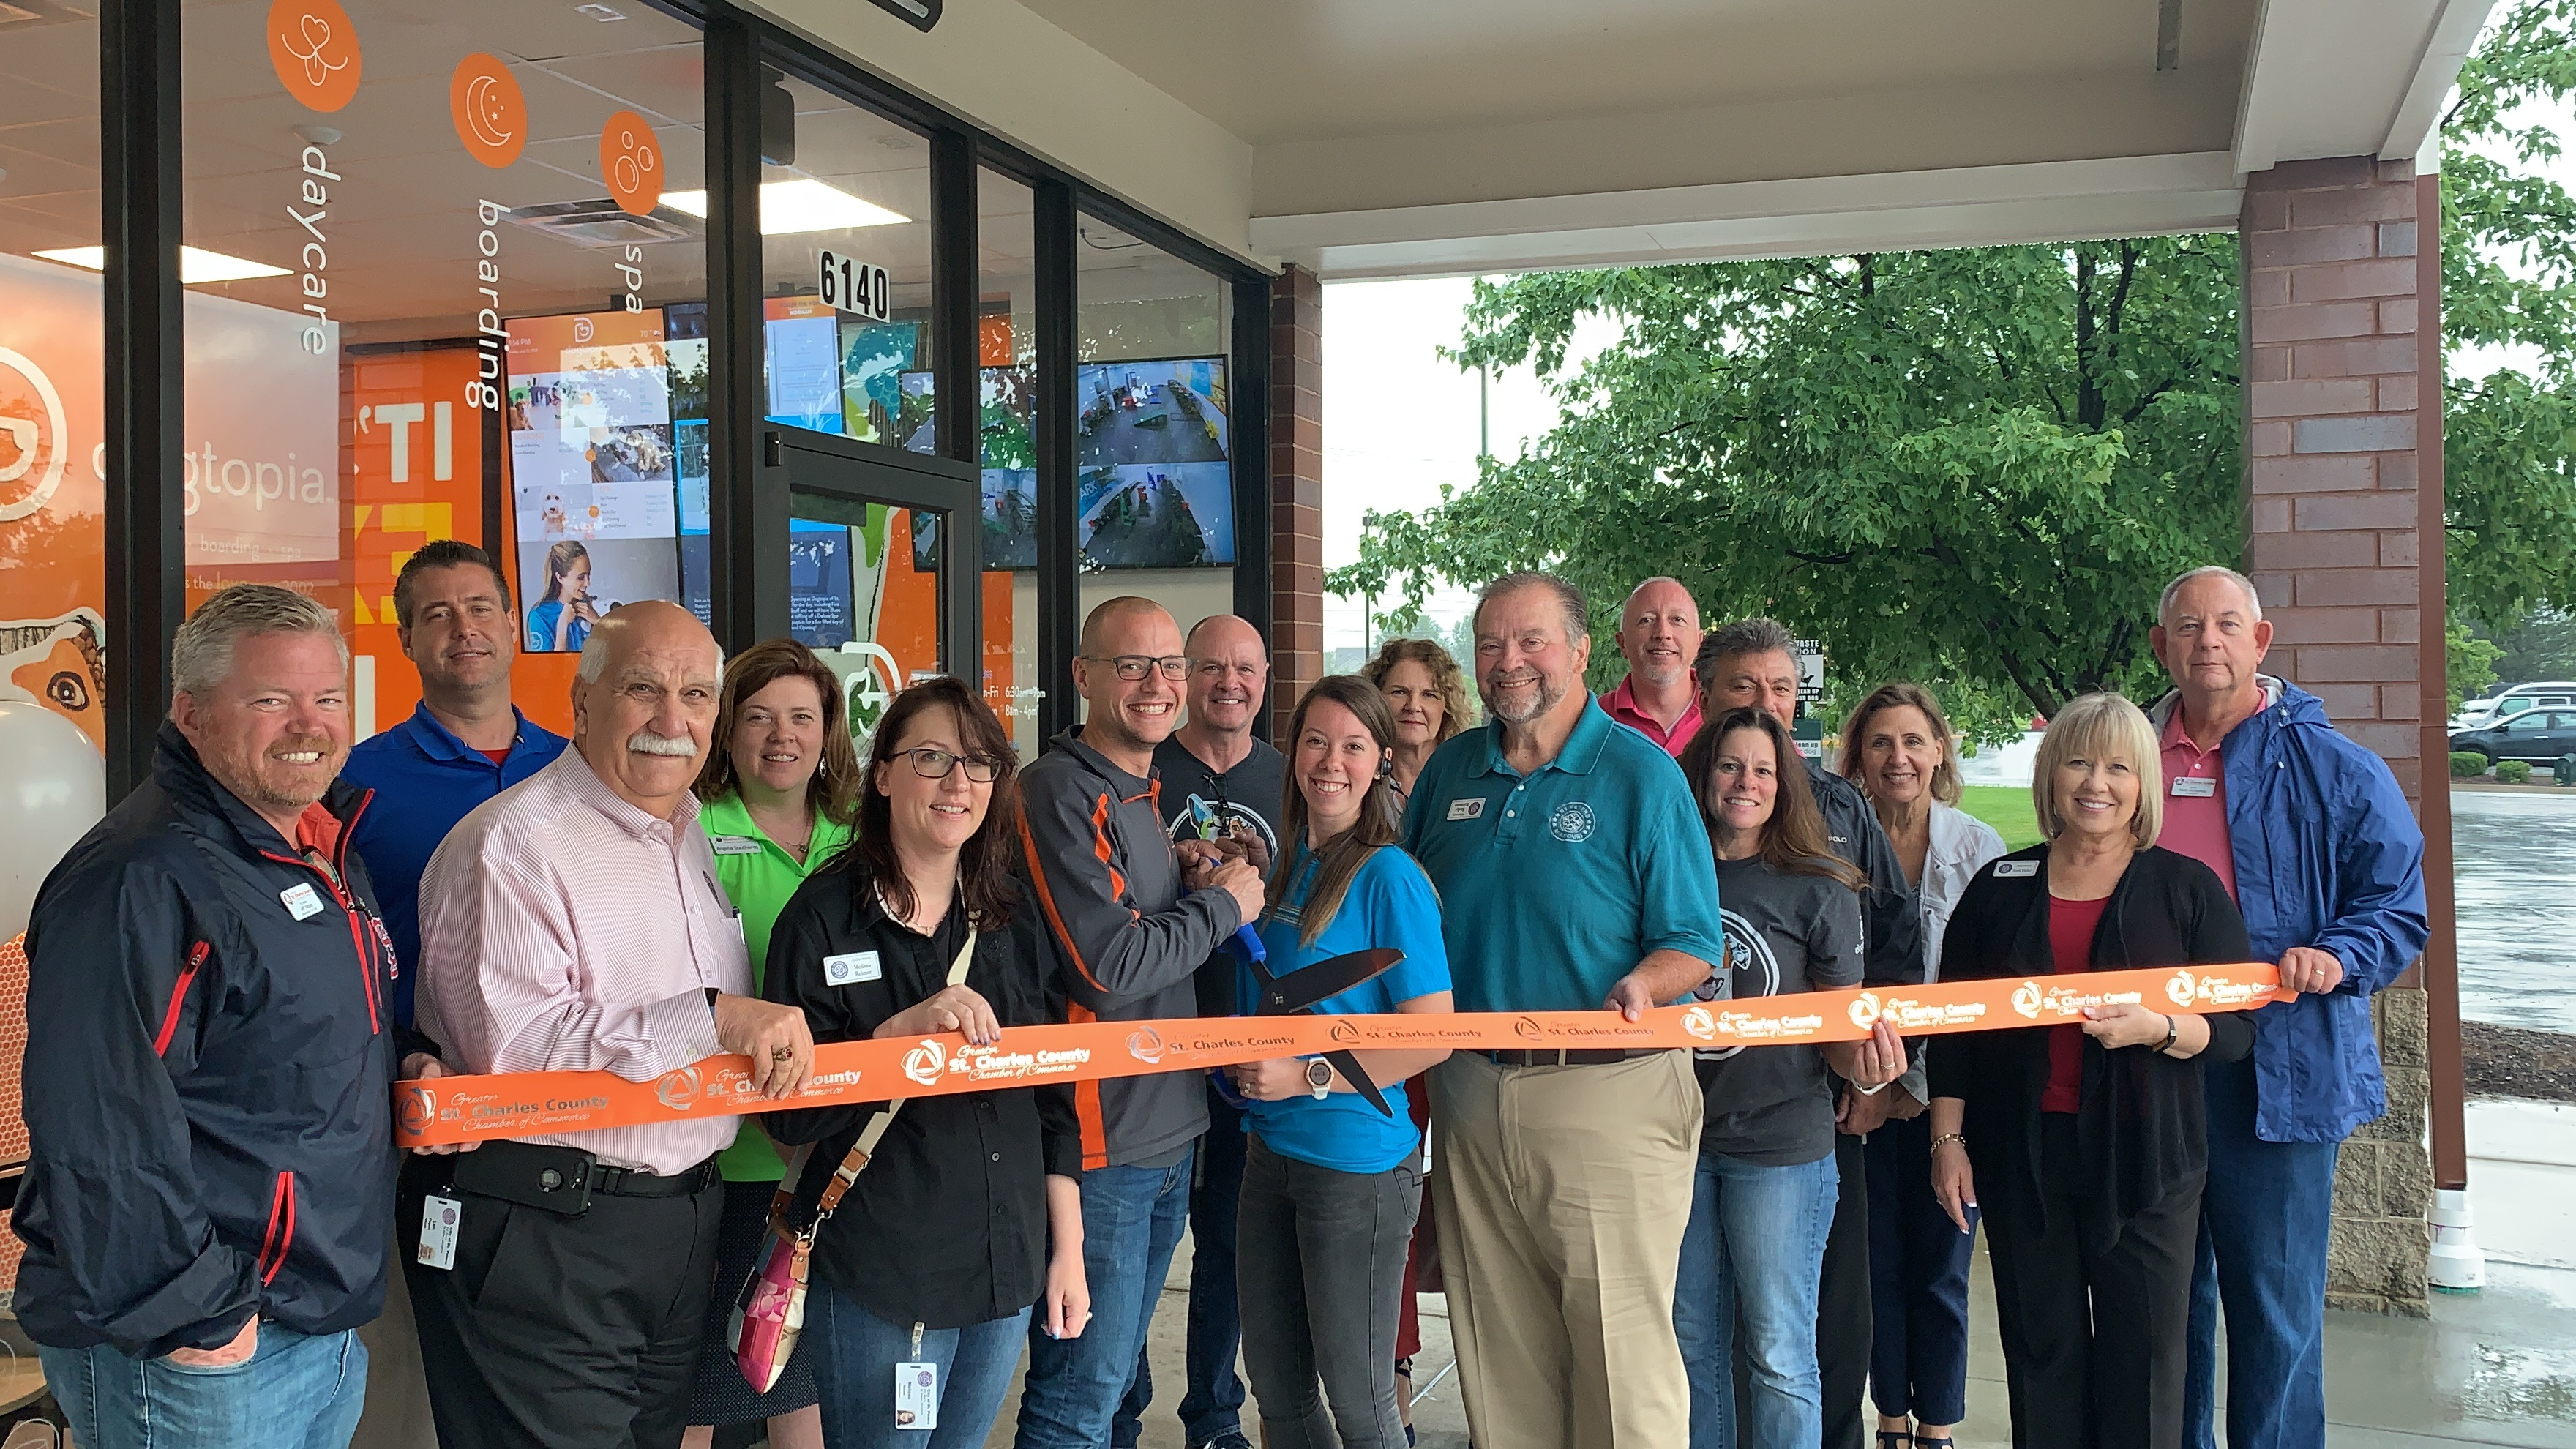 Image for Dogtopia of St. Peters Celebrates Grand Opening with Ribbon Cutting